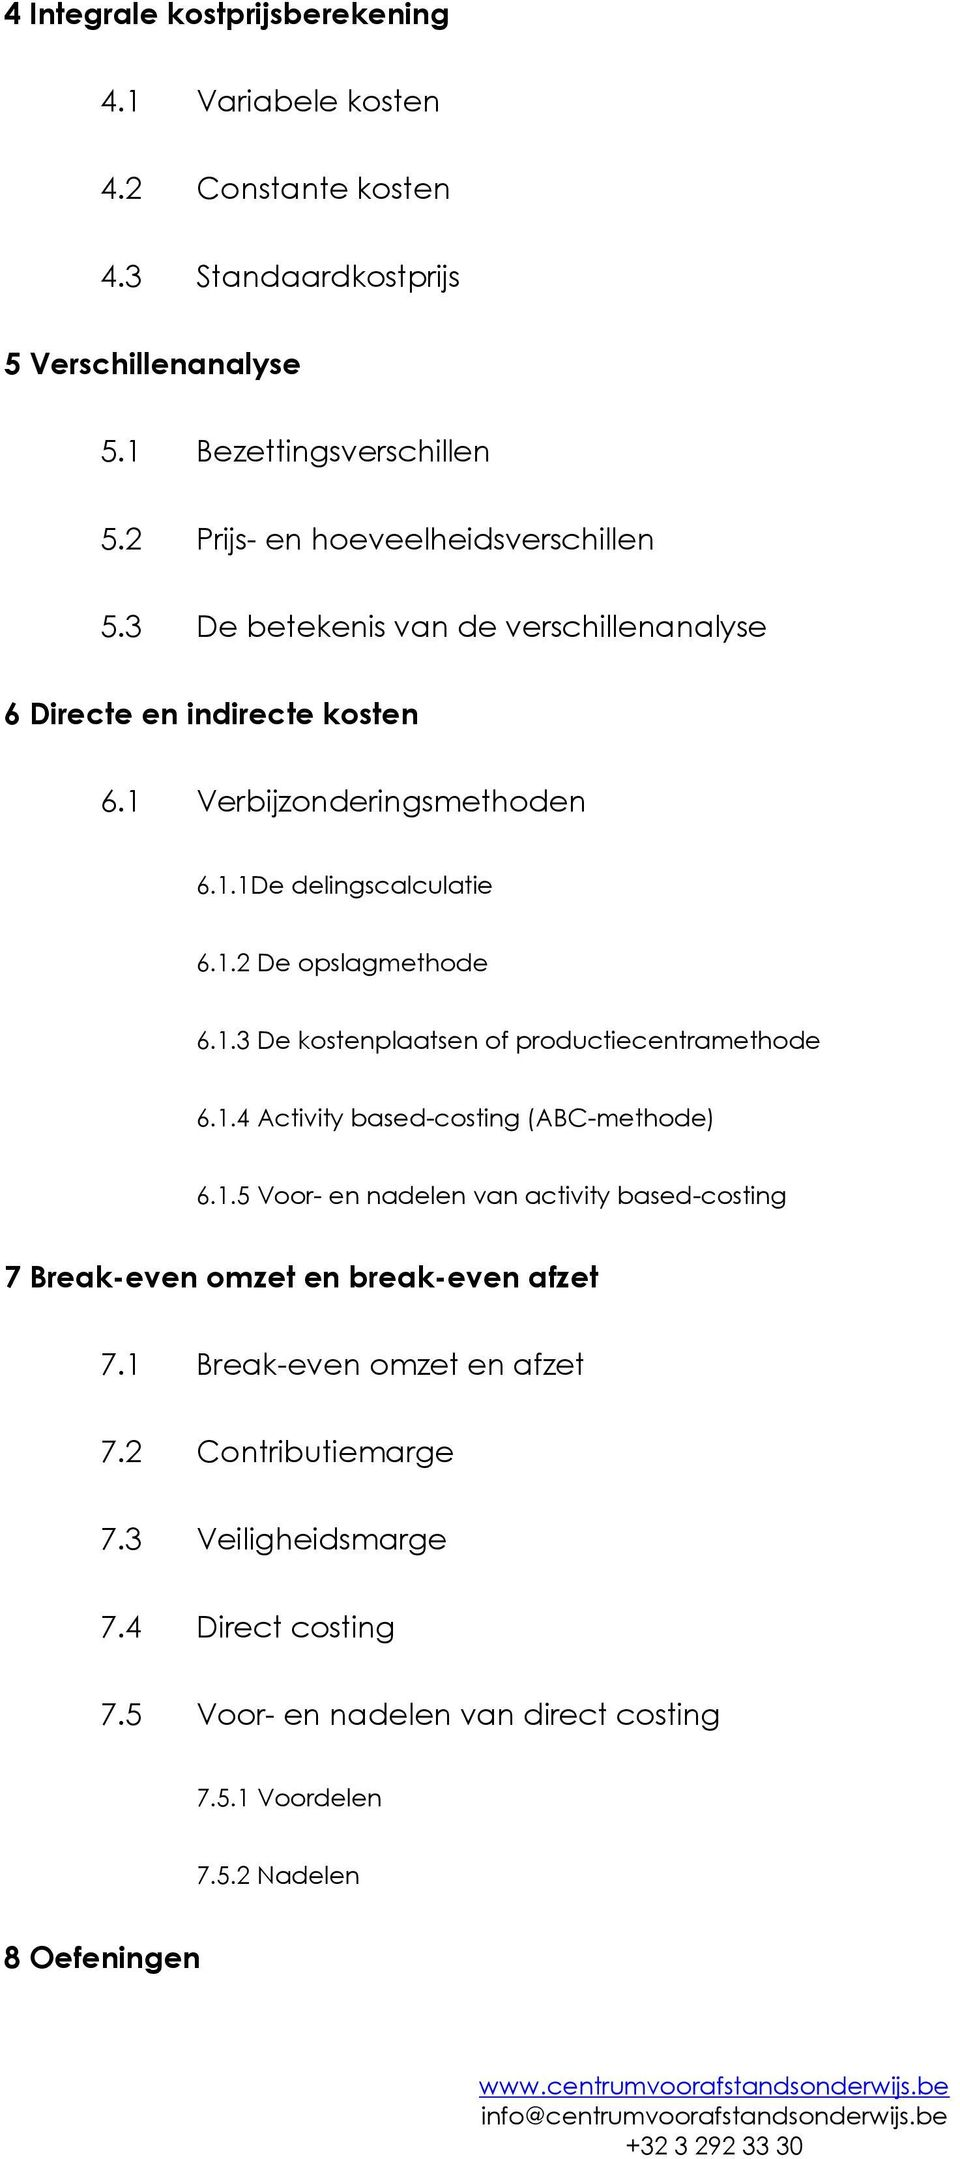 1.3 De kostenplaatsen of productiecentramethode 6.1.4 Activity based-costing (ABC-methode) 6.1.5 Voor- en nadelen van activity based-costing 7 Break-even omzet en break-even afzet 7.